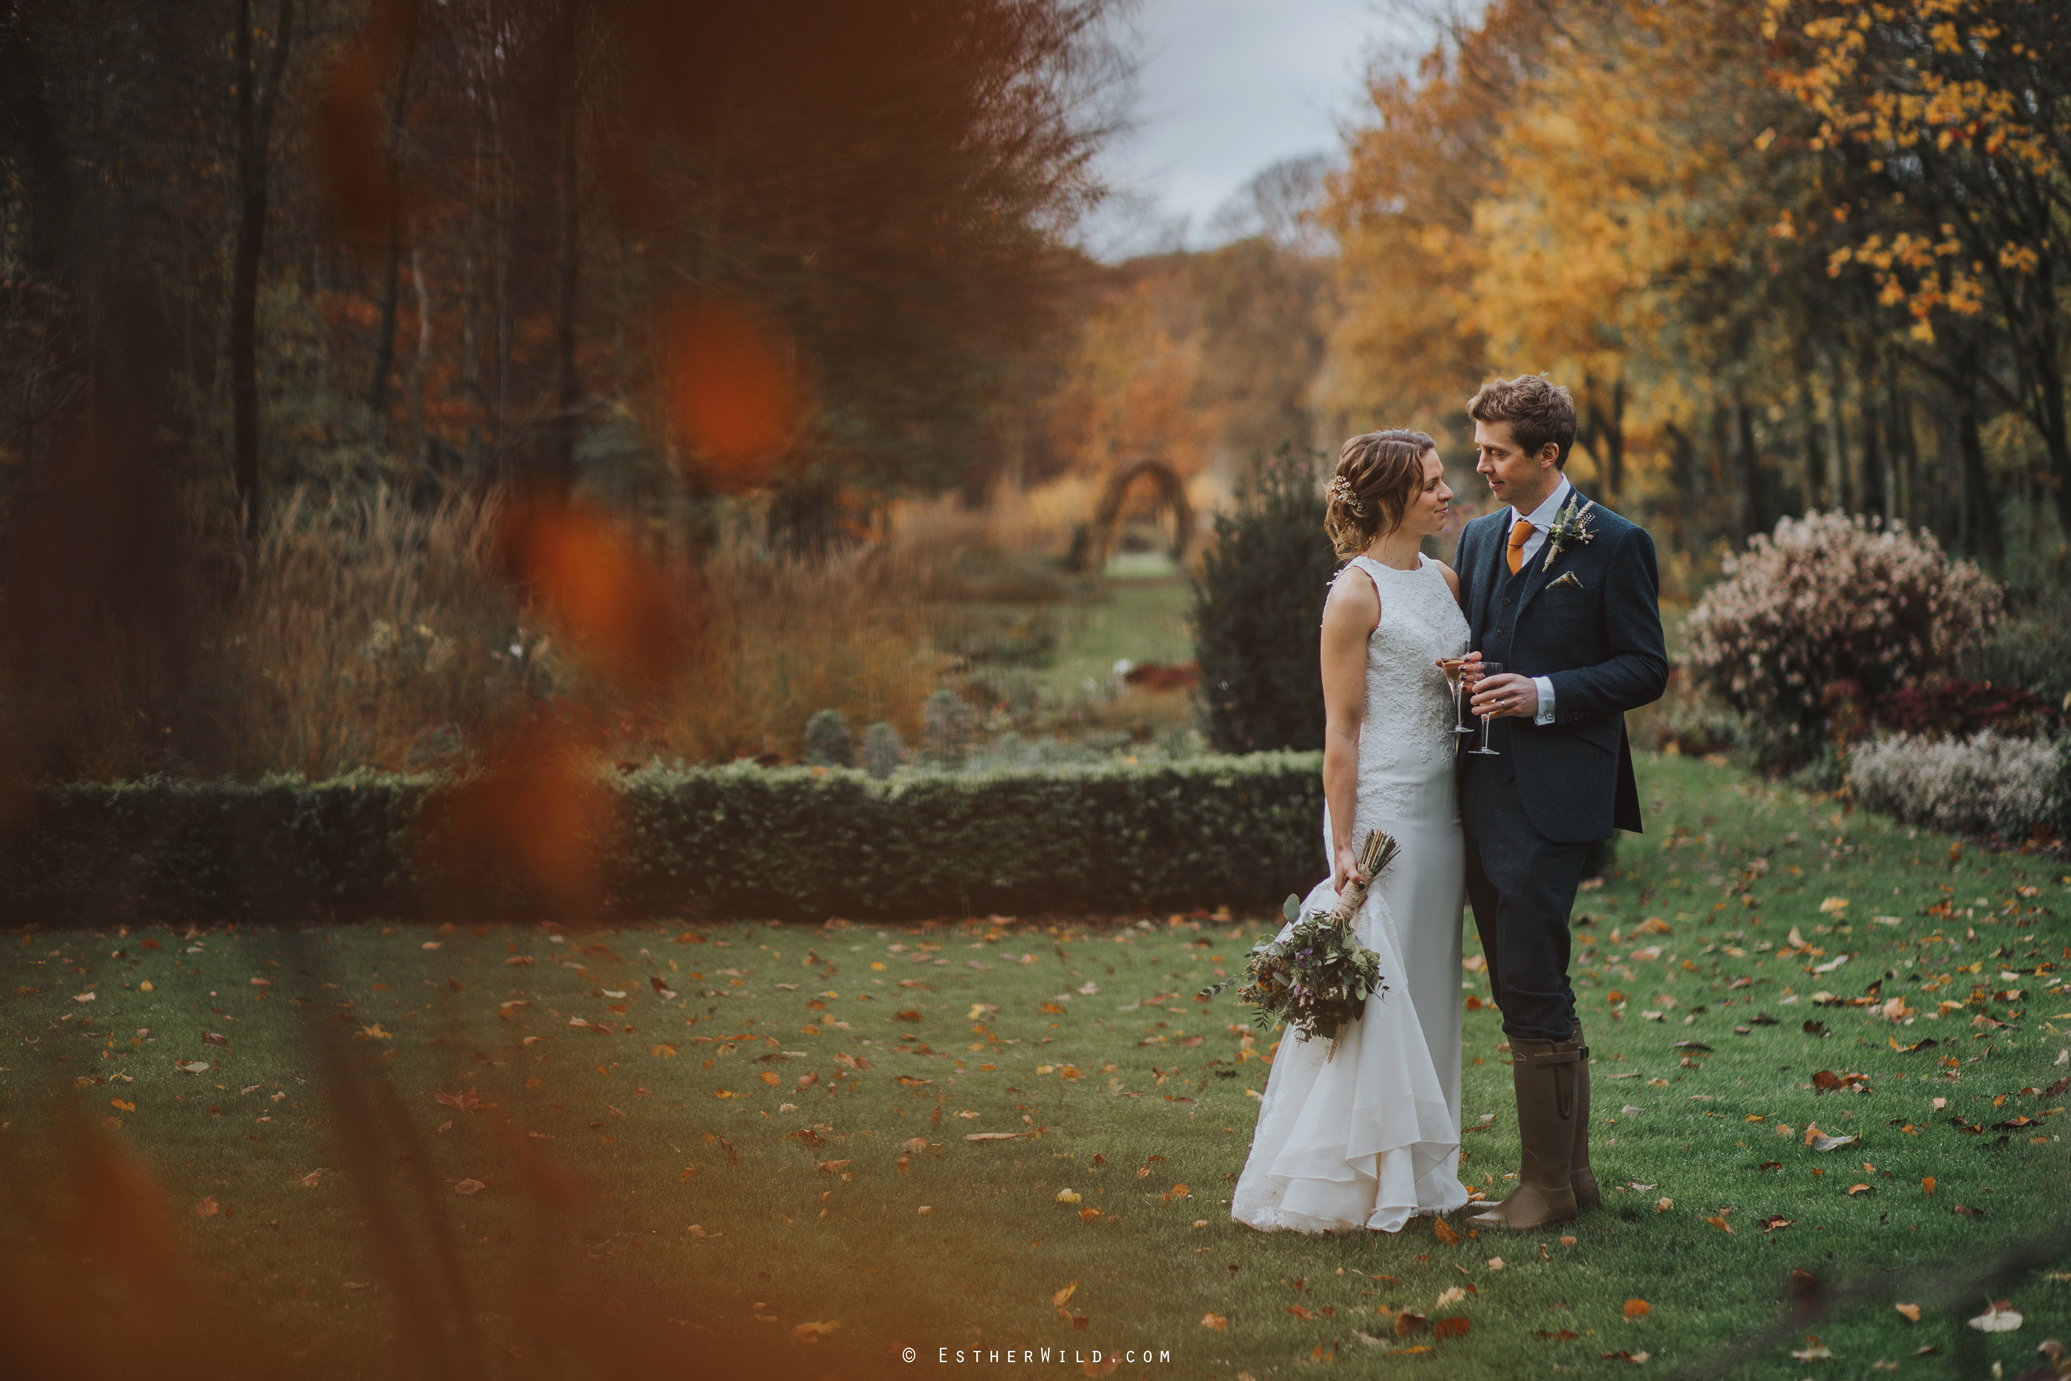 Wedding_Photographer_Chaucer_Barn_Holt_Norfolk_Country_Rustic_Venue_Copyright_Esther_Wild_